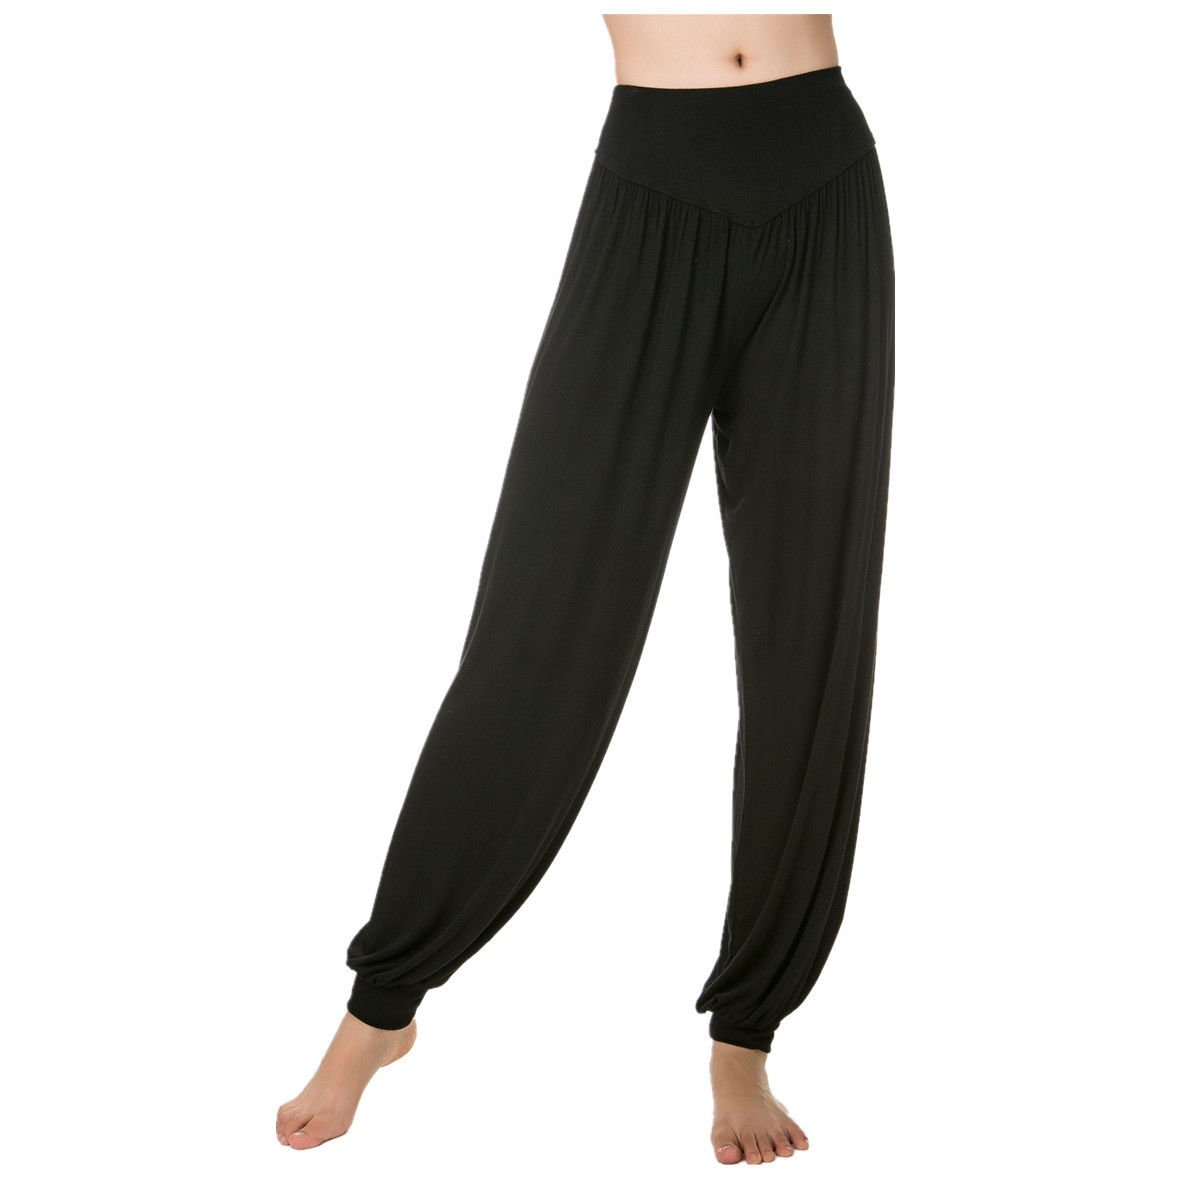 Womens Modal Spandex Legging Cotton Soft Yoga Sports Dance Harem Pilates Pants